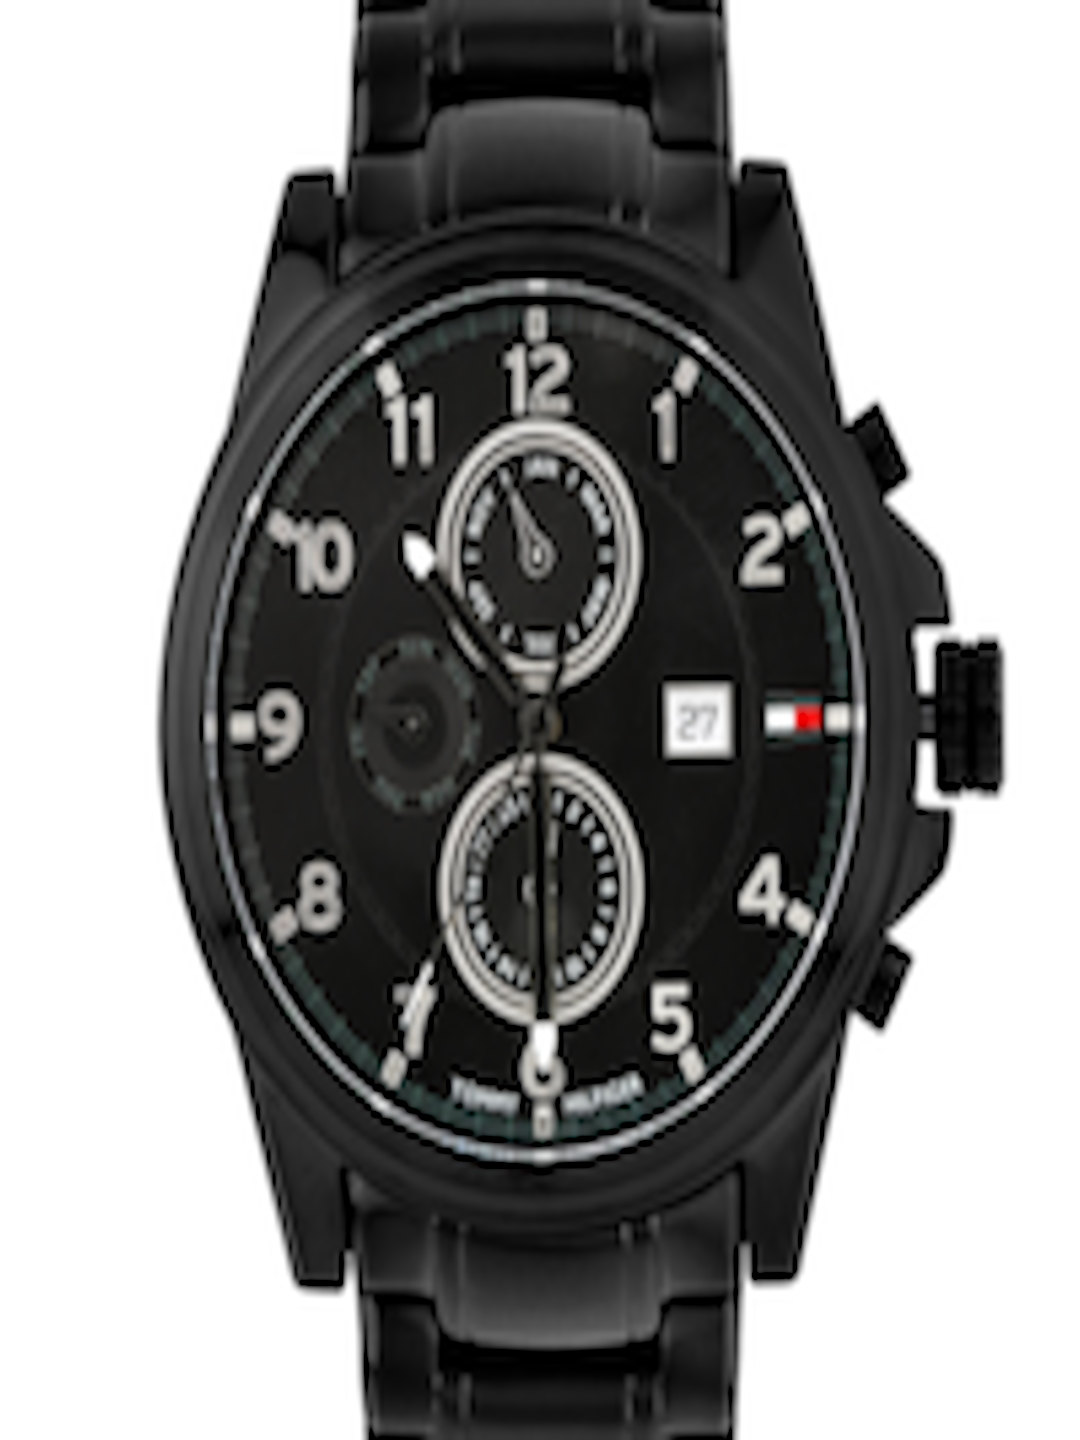 63a7c2d54820e2 Buy Tommy Hilfiger Men Black Dial Chronograph Watch TH1790961J - Watches  for Men 237112